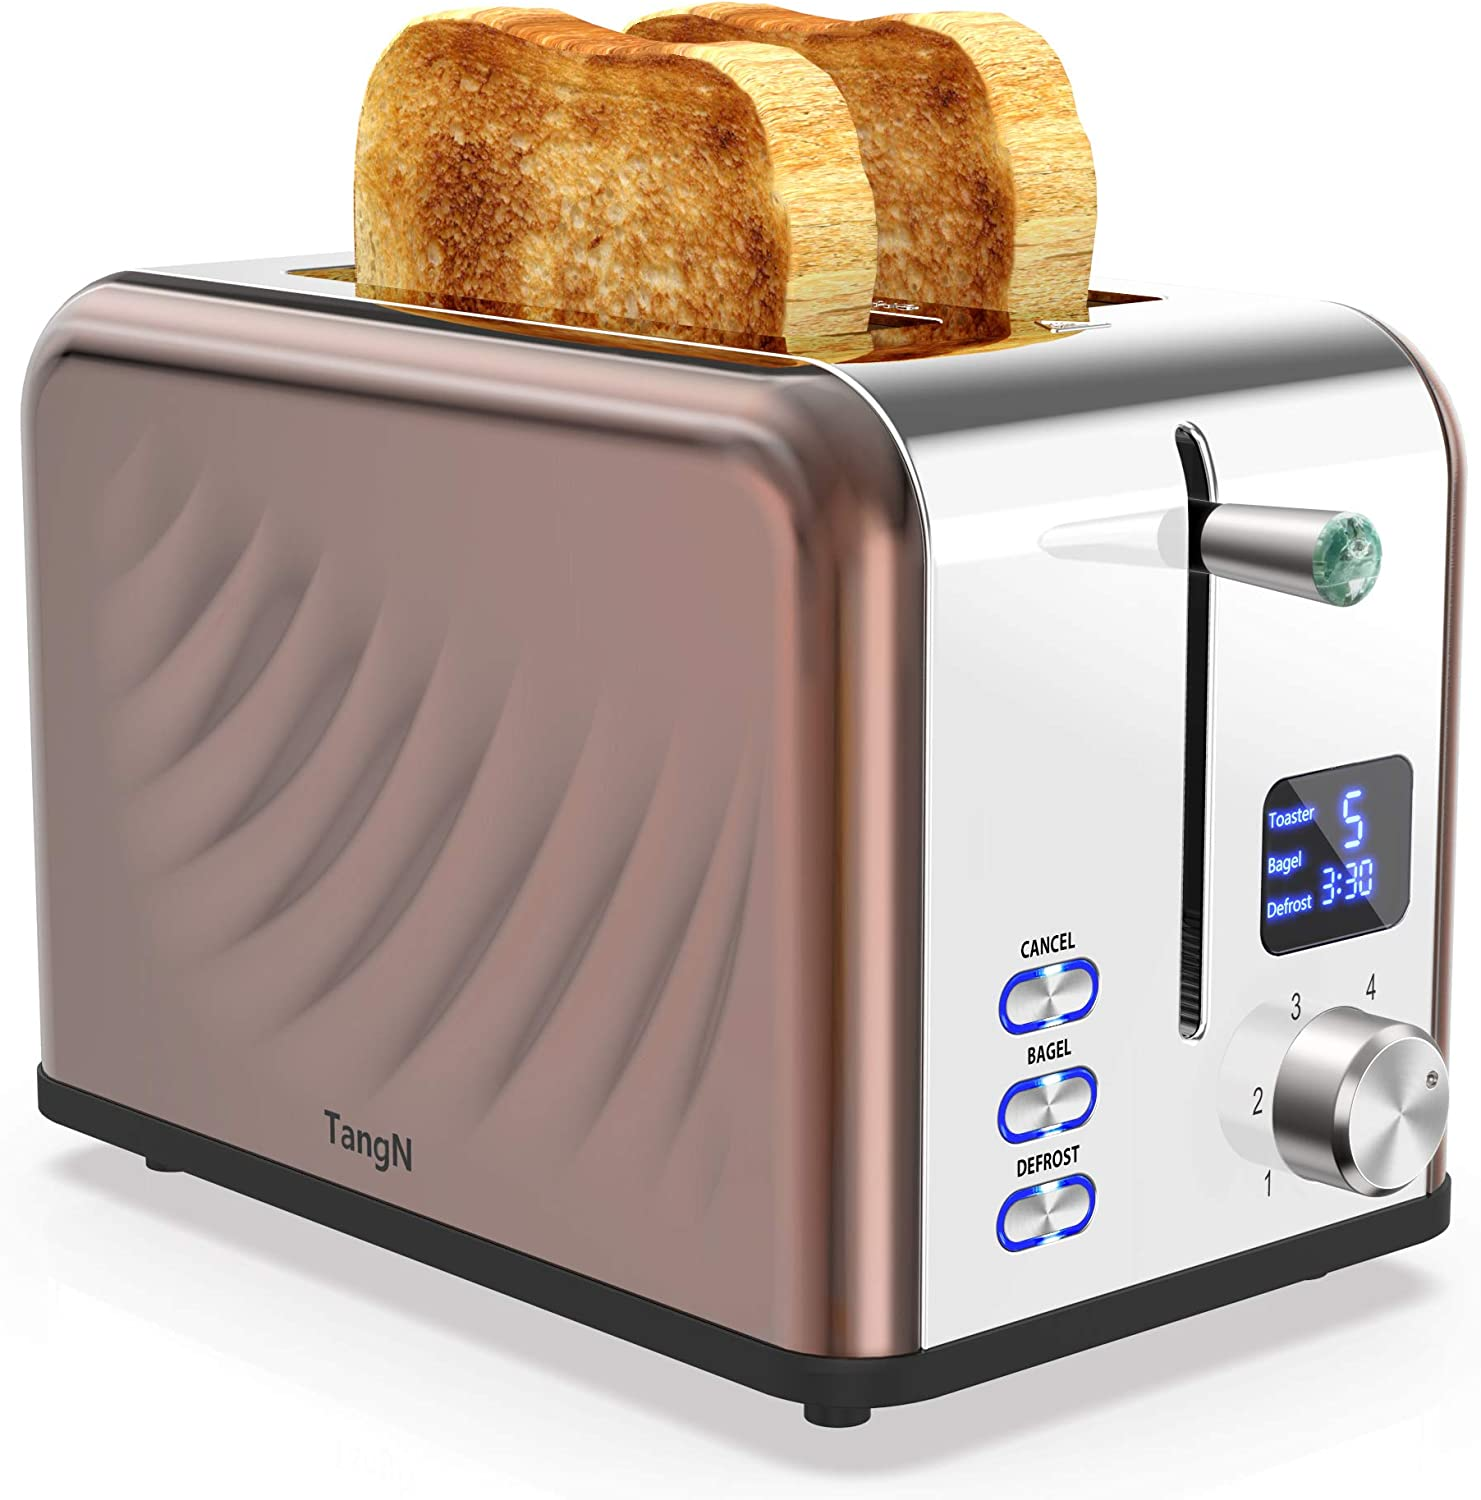 Toasters 2 Slice Best Rated Prime, Stainless Steel,Bagel Toaster - 6 Bread Shade Settings with big Timer/Bagel/Defrost/Cancel Function,1.5in Wide Slots,Removable Crumb Tray,for Various Bread Types